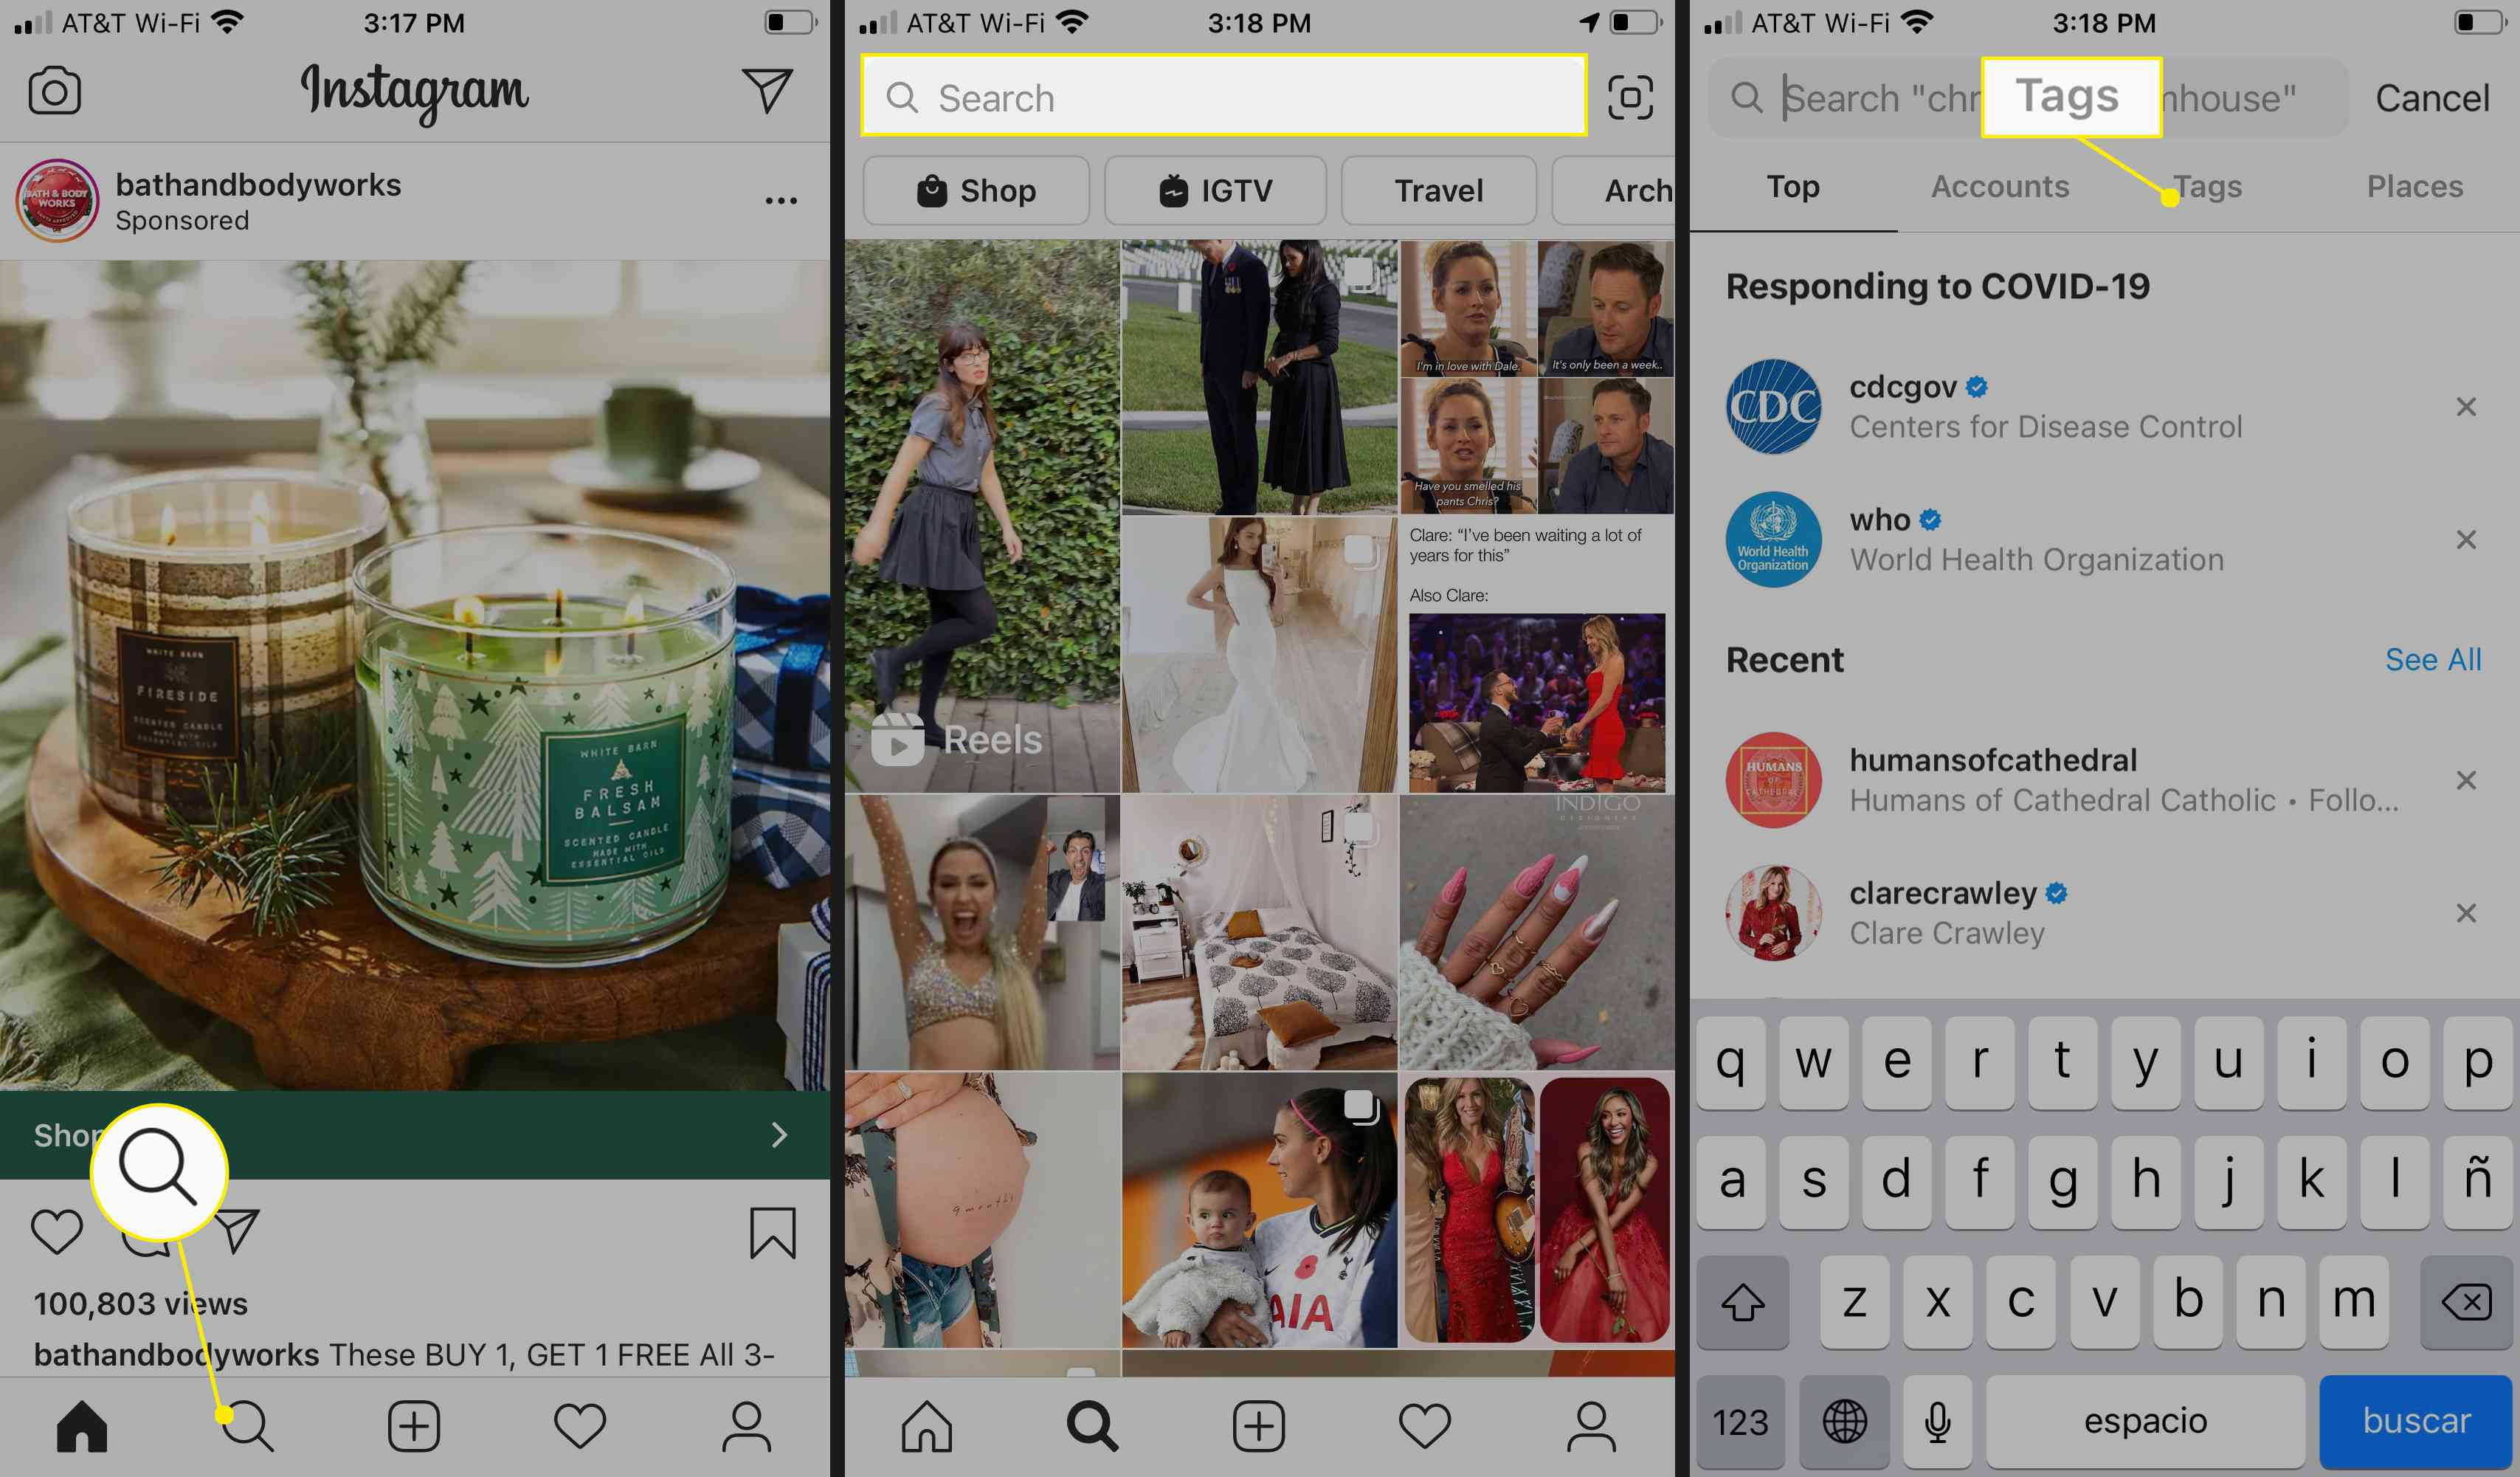 Search for hashtags on Instagram's Explore page